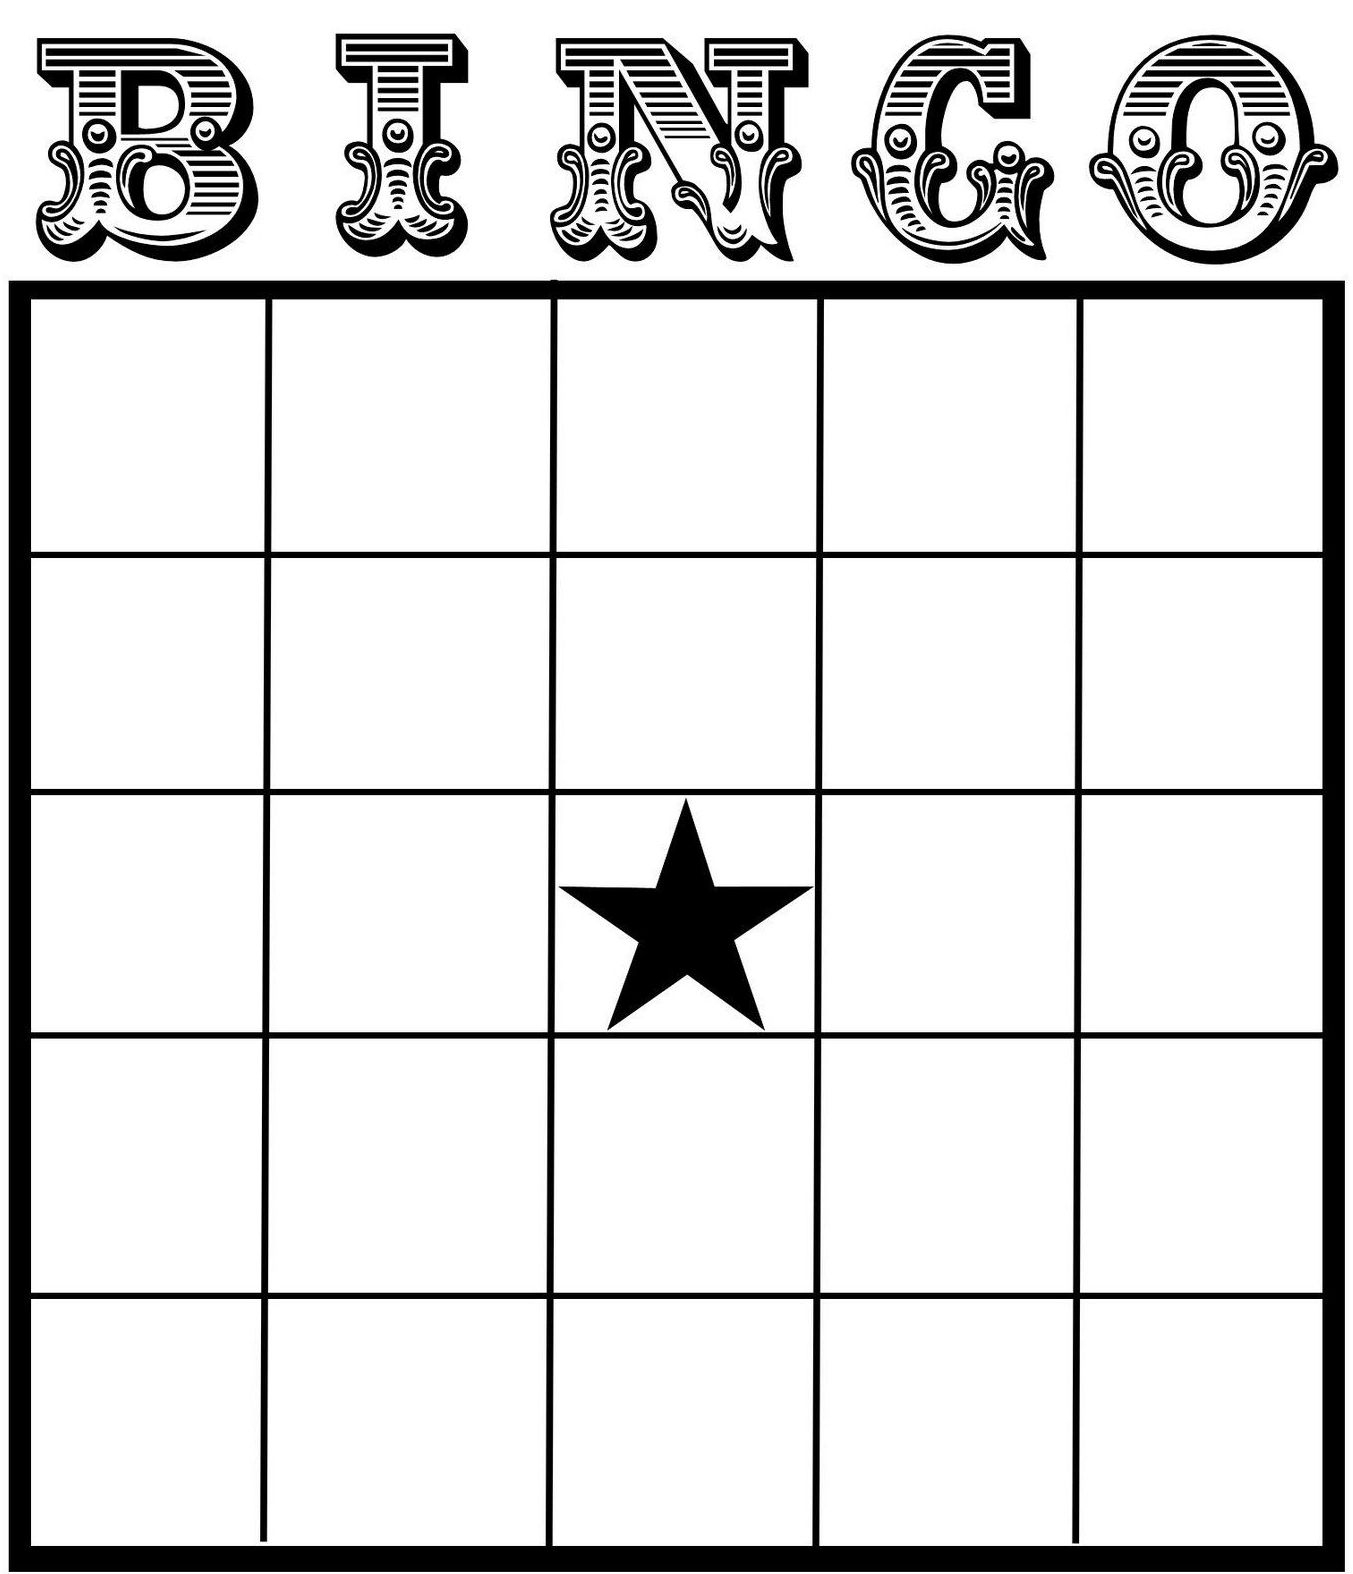 Free Printable Bingo Card Template - Set Your Plan & Tasks With Best - Free Printable Bingo Cards For Teachers